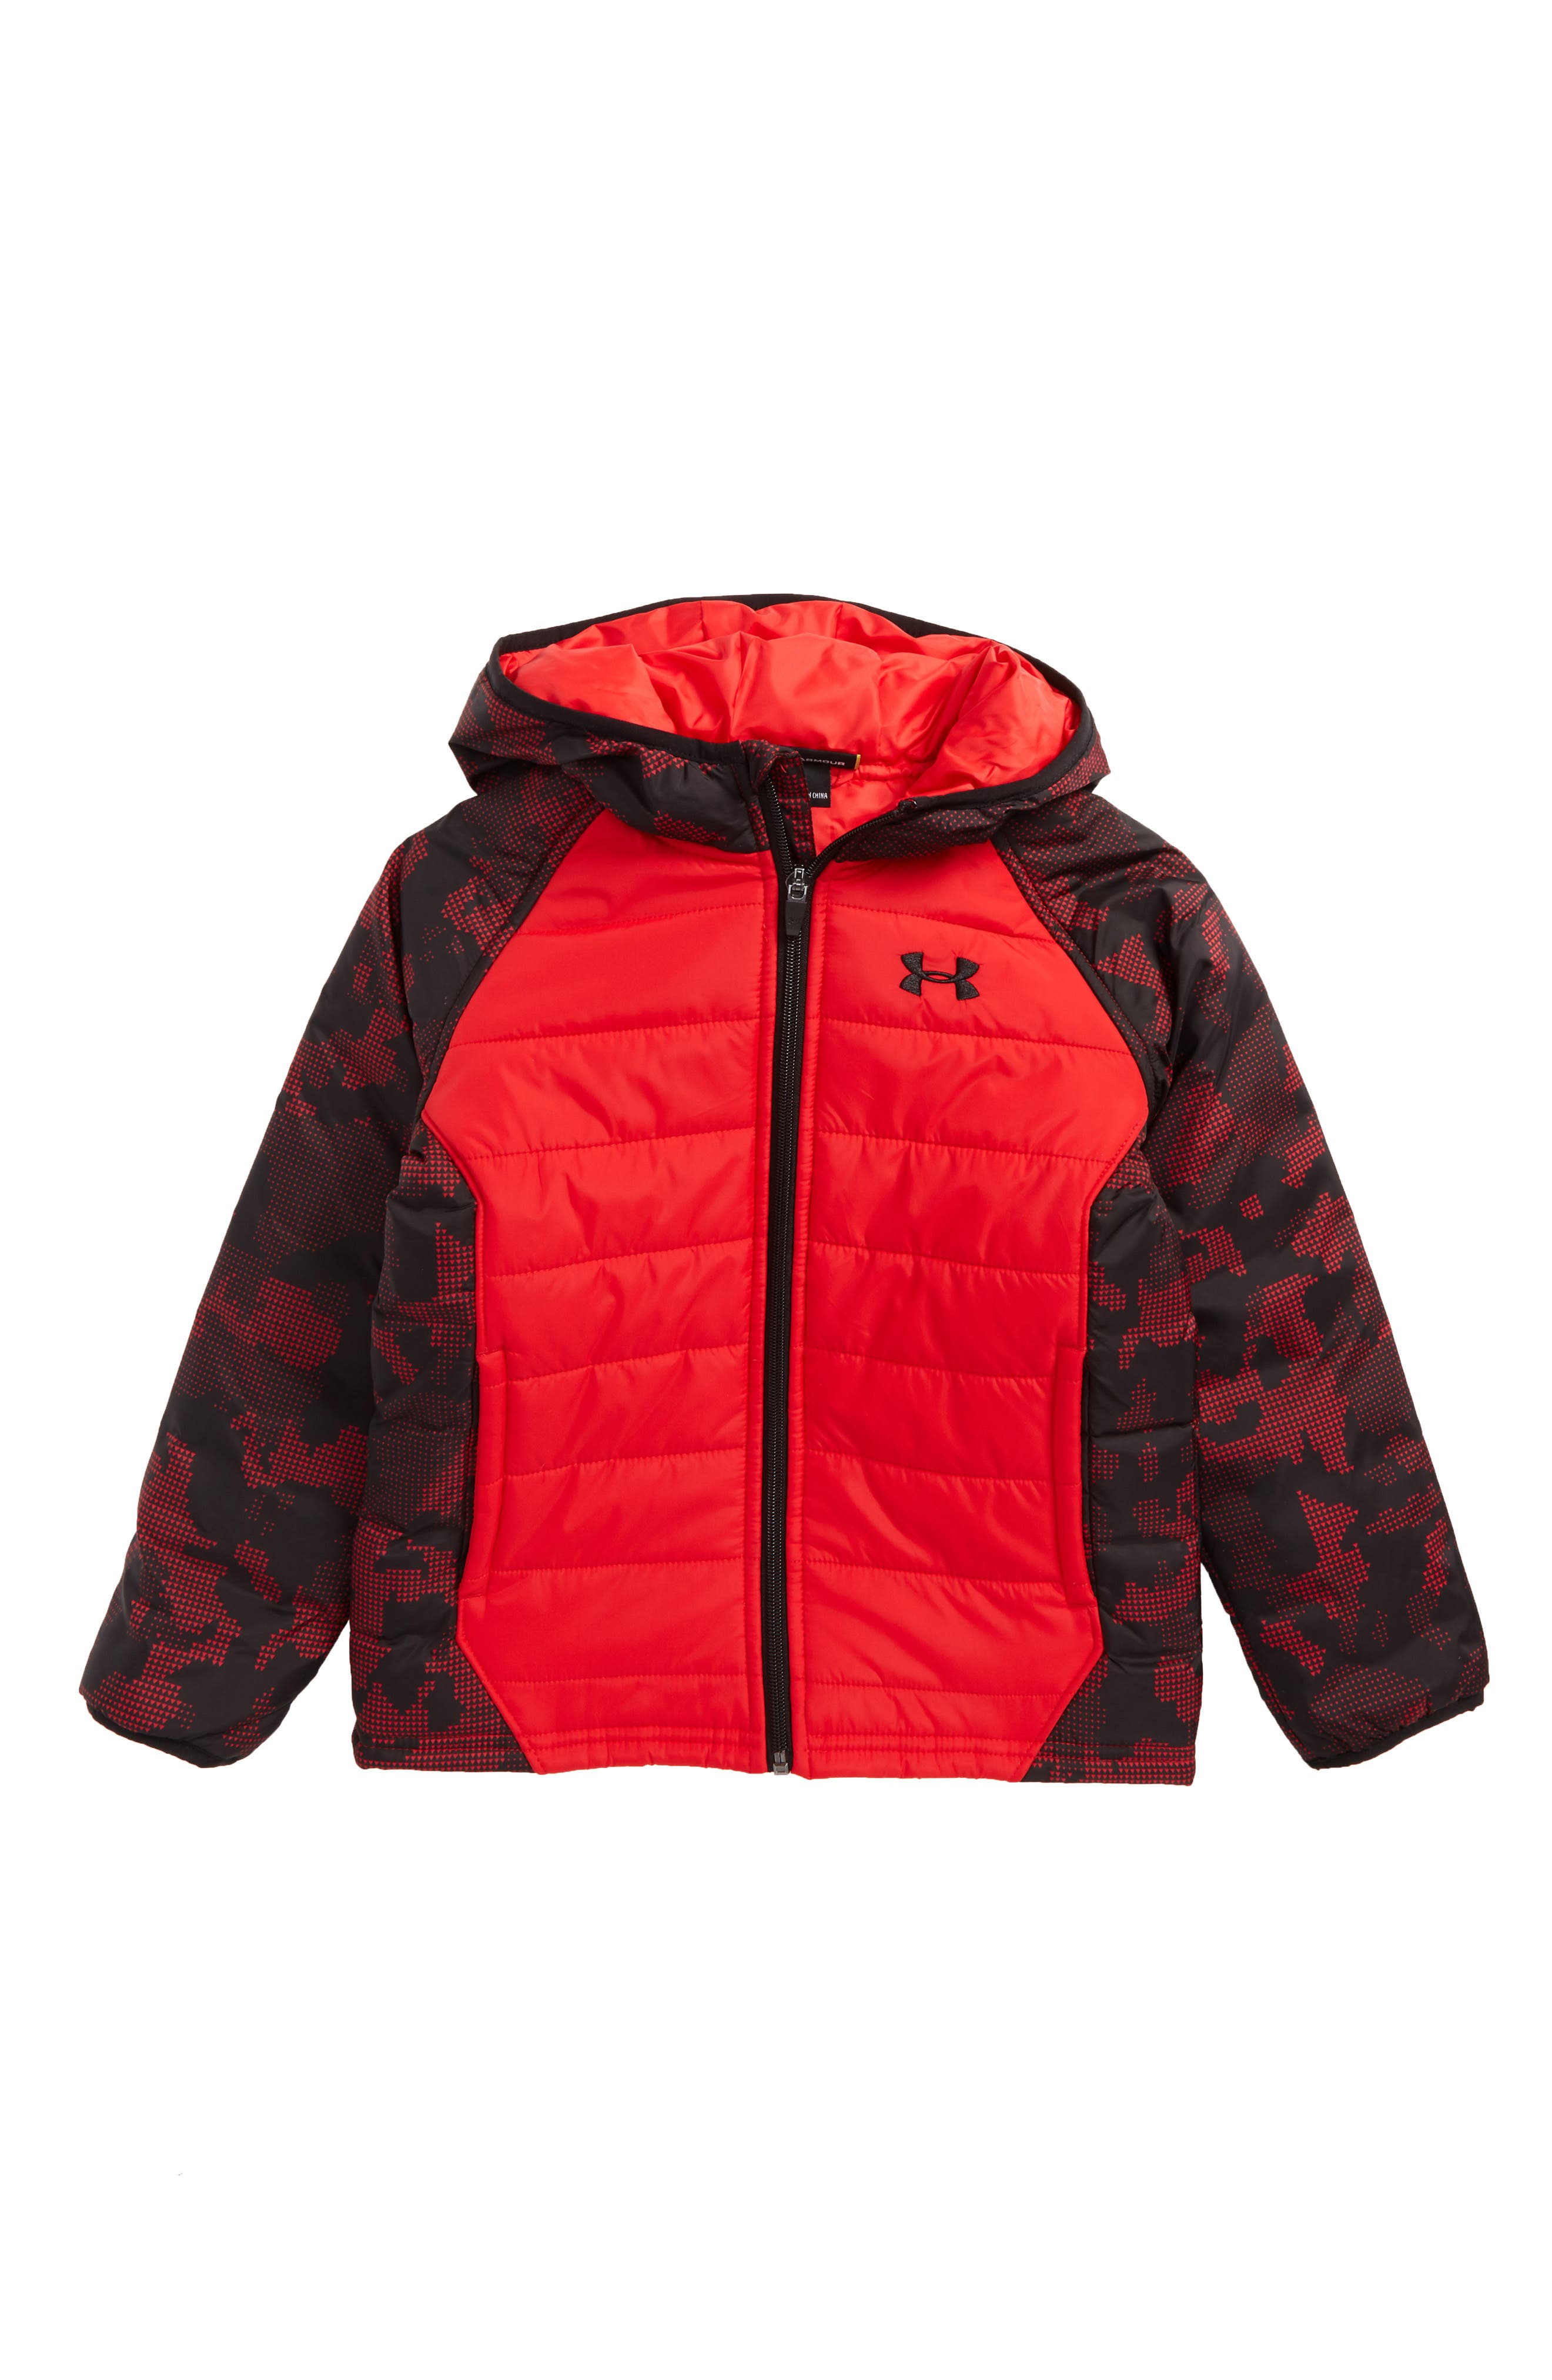 Main Image - Under Armour Werewolf Water Resistant Hooded Puffer Jacket (Toddler Boys & Little Boys)